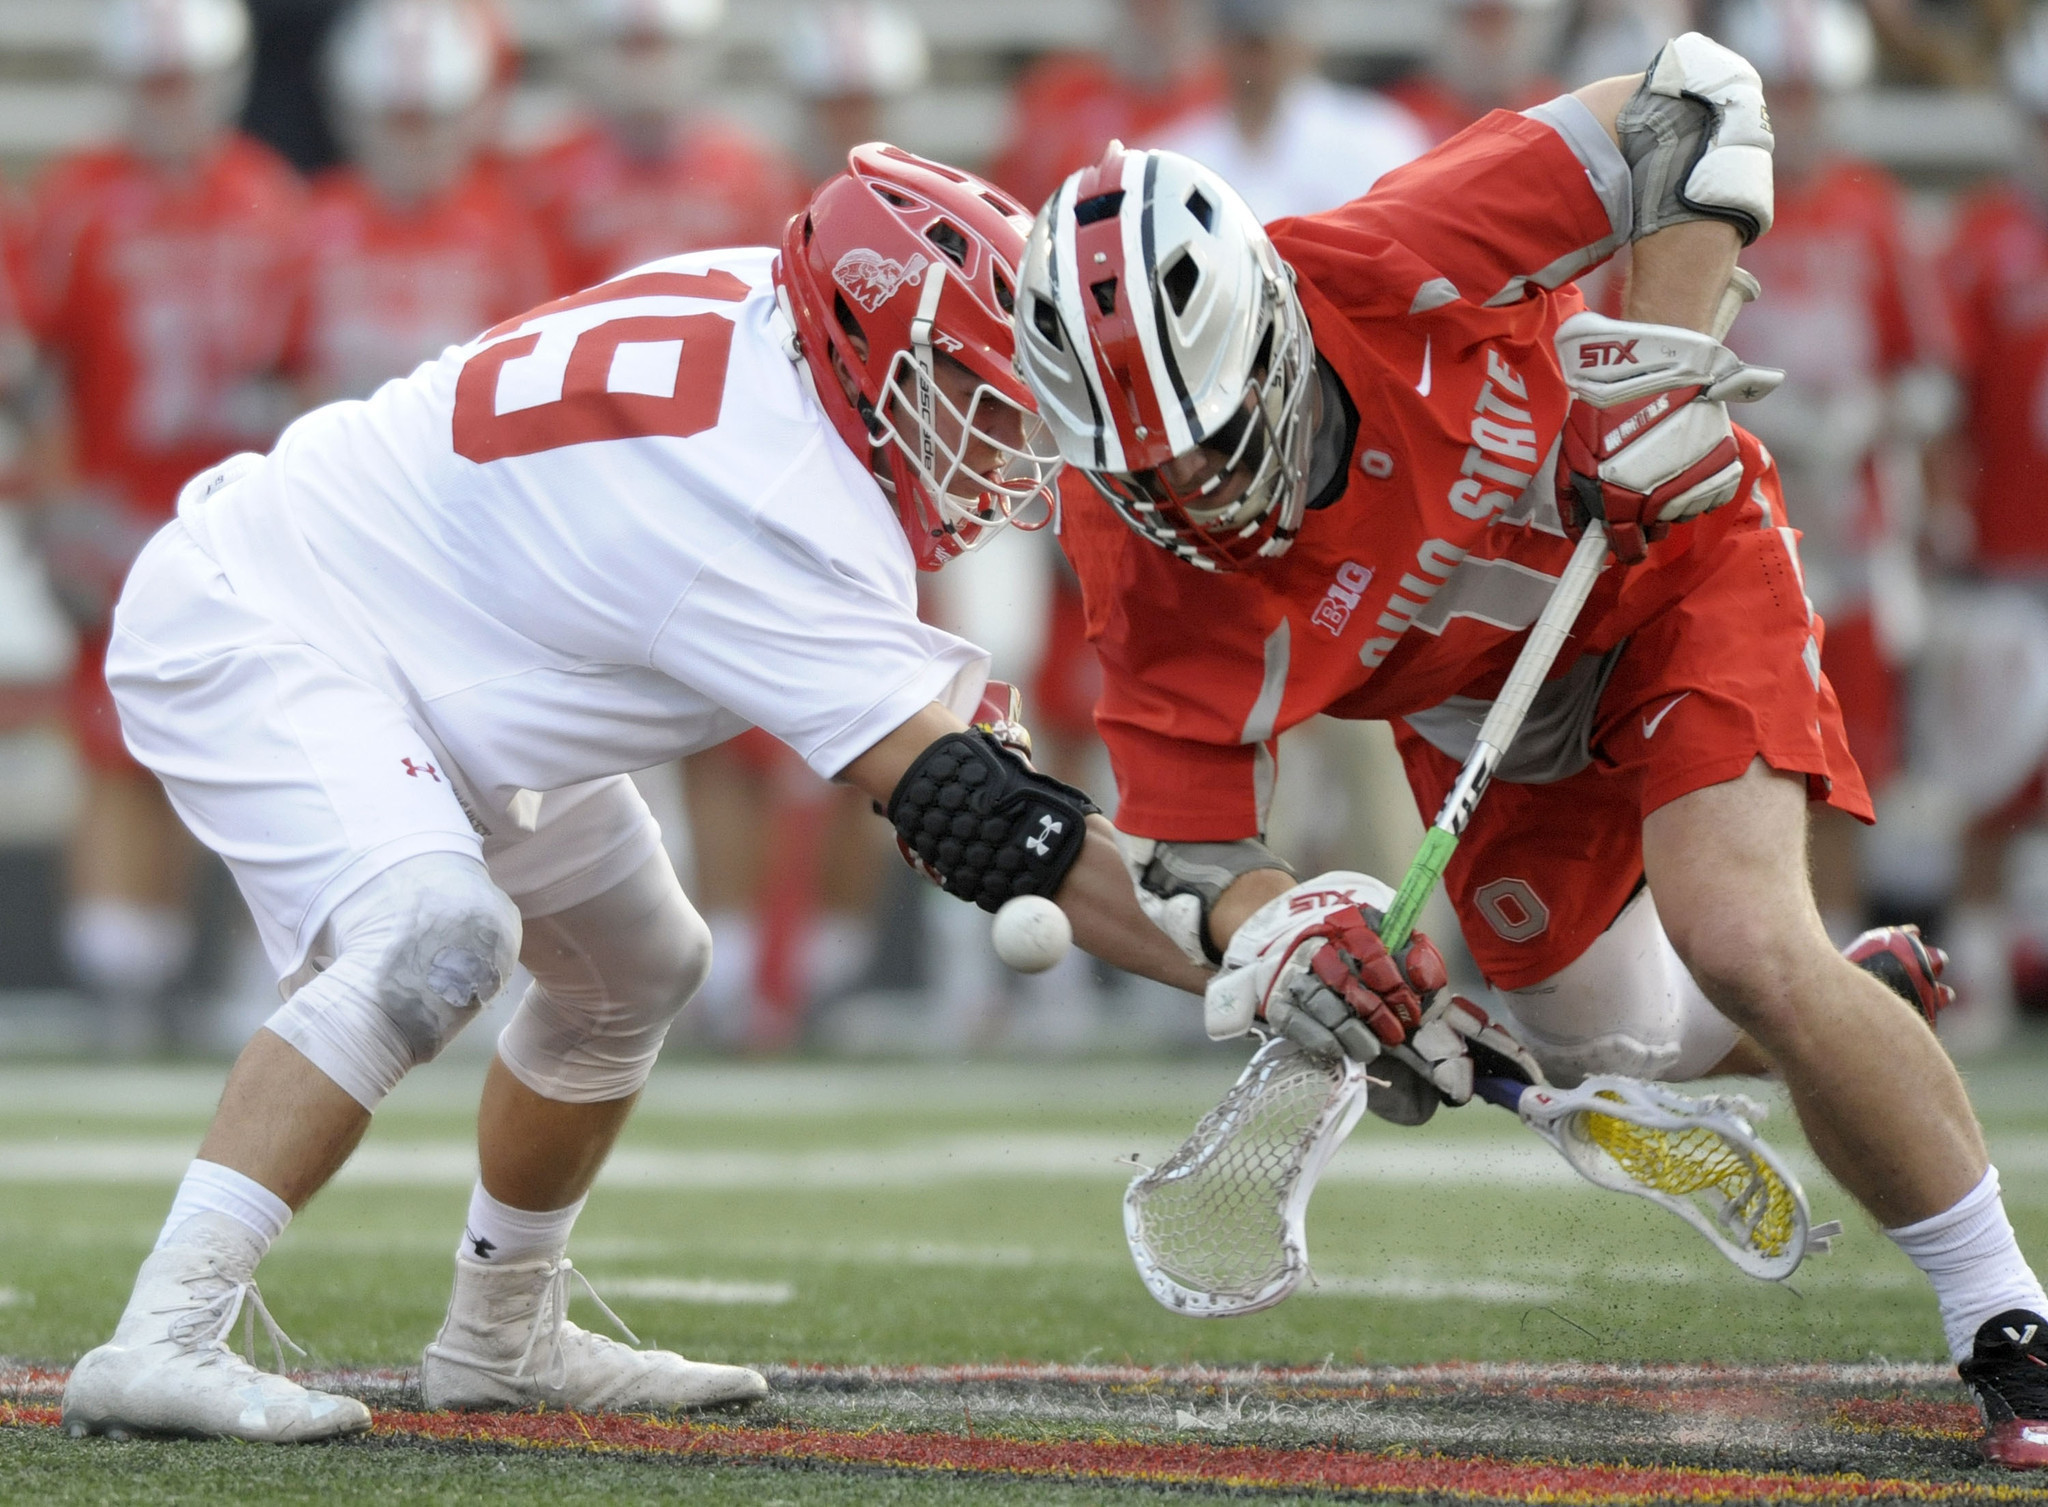 Bal-postscript-from-ohio-state-at-maryland-men-s-lacrosse-20160424